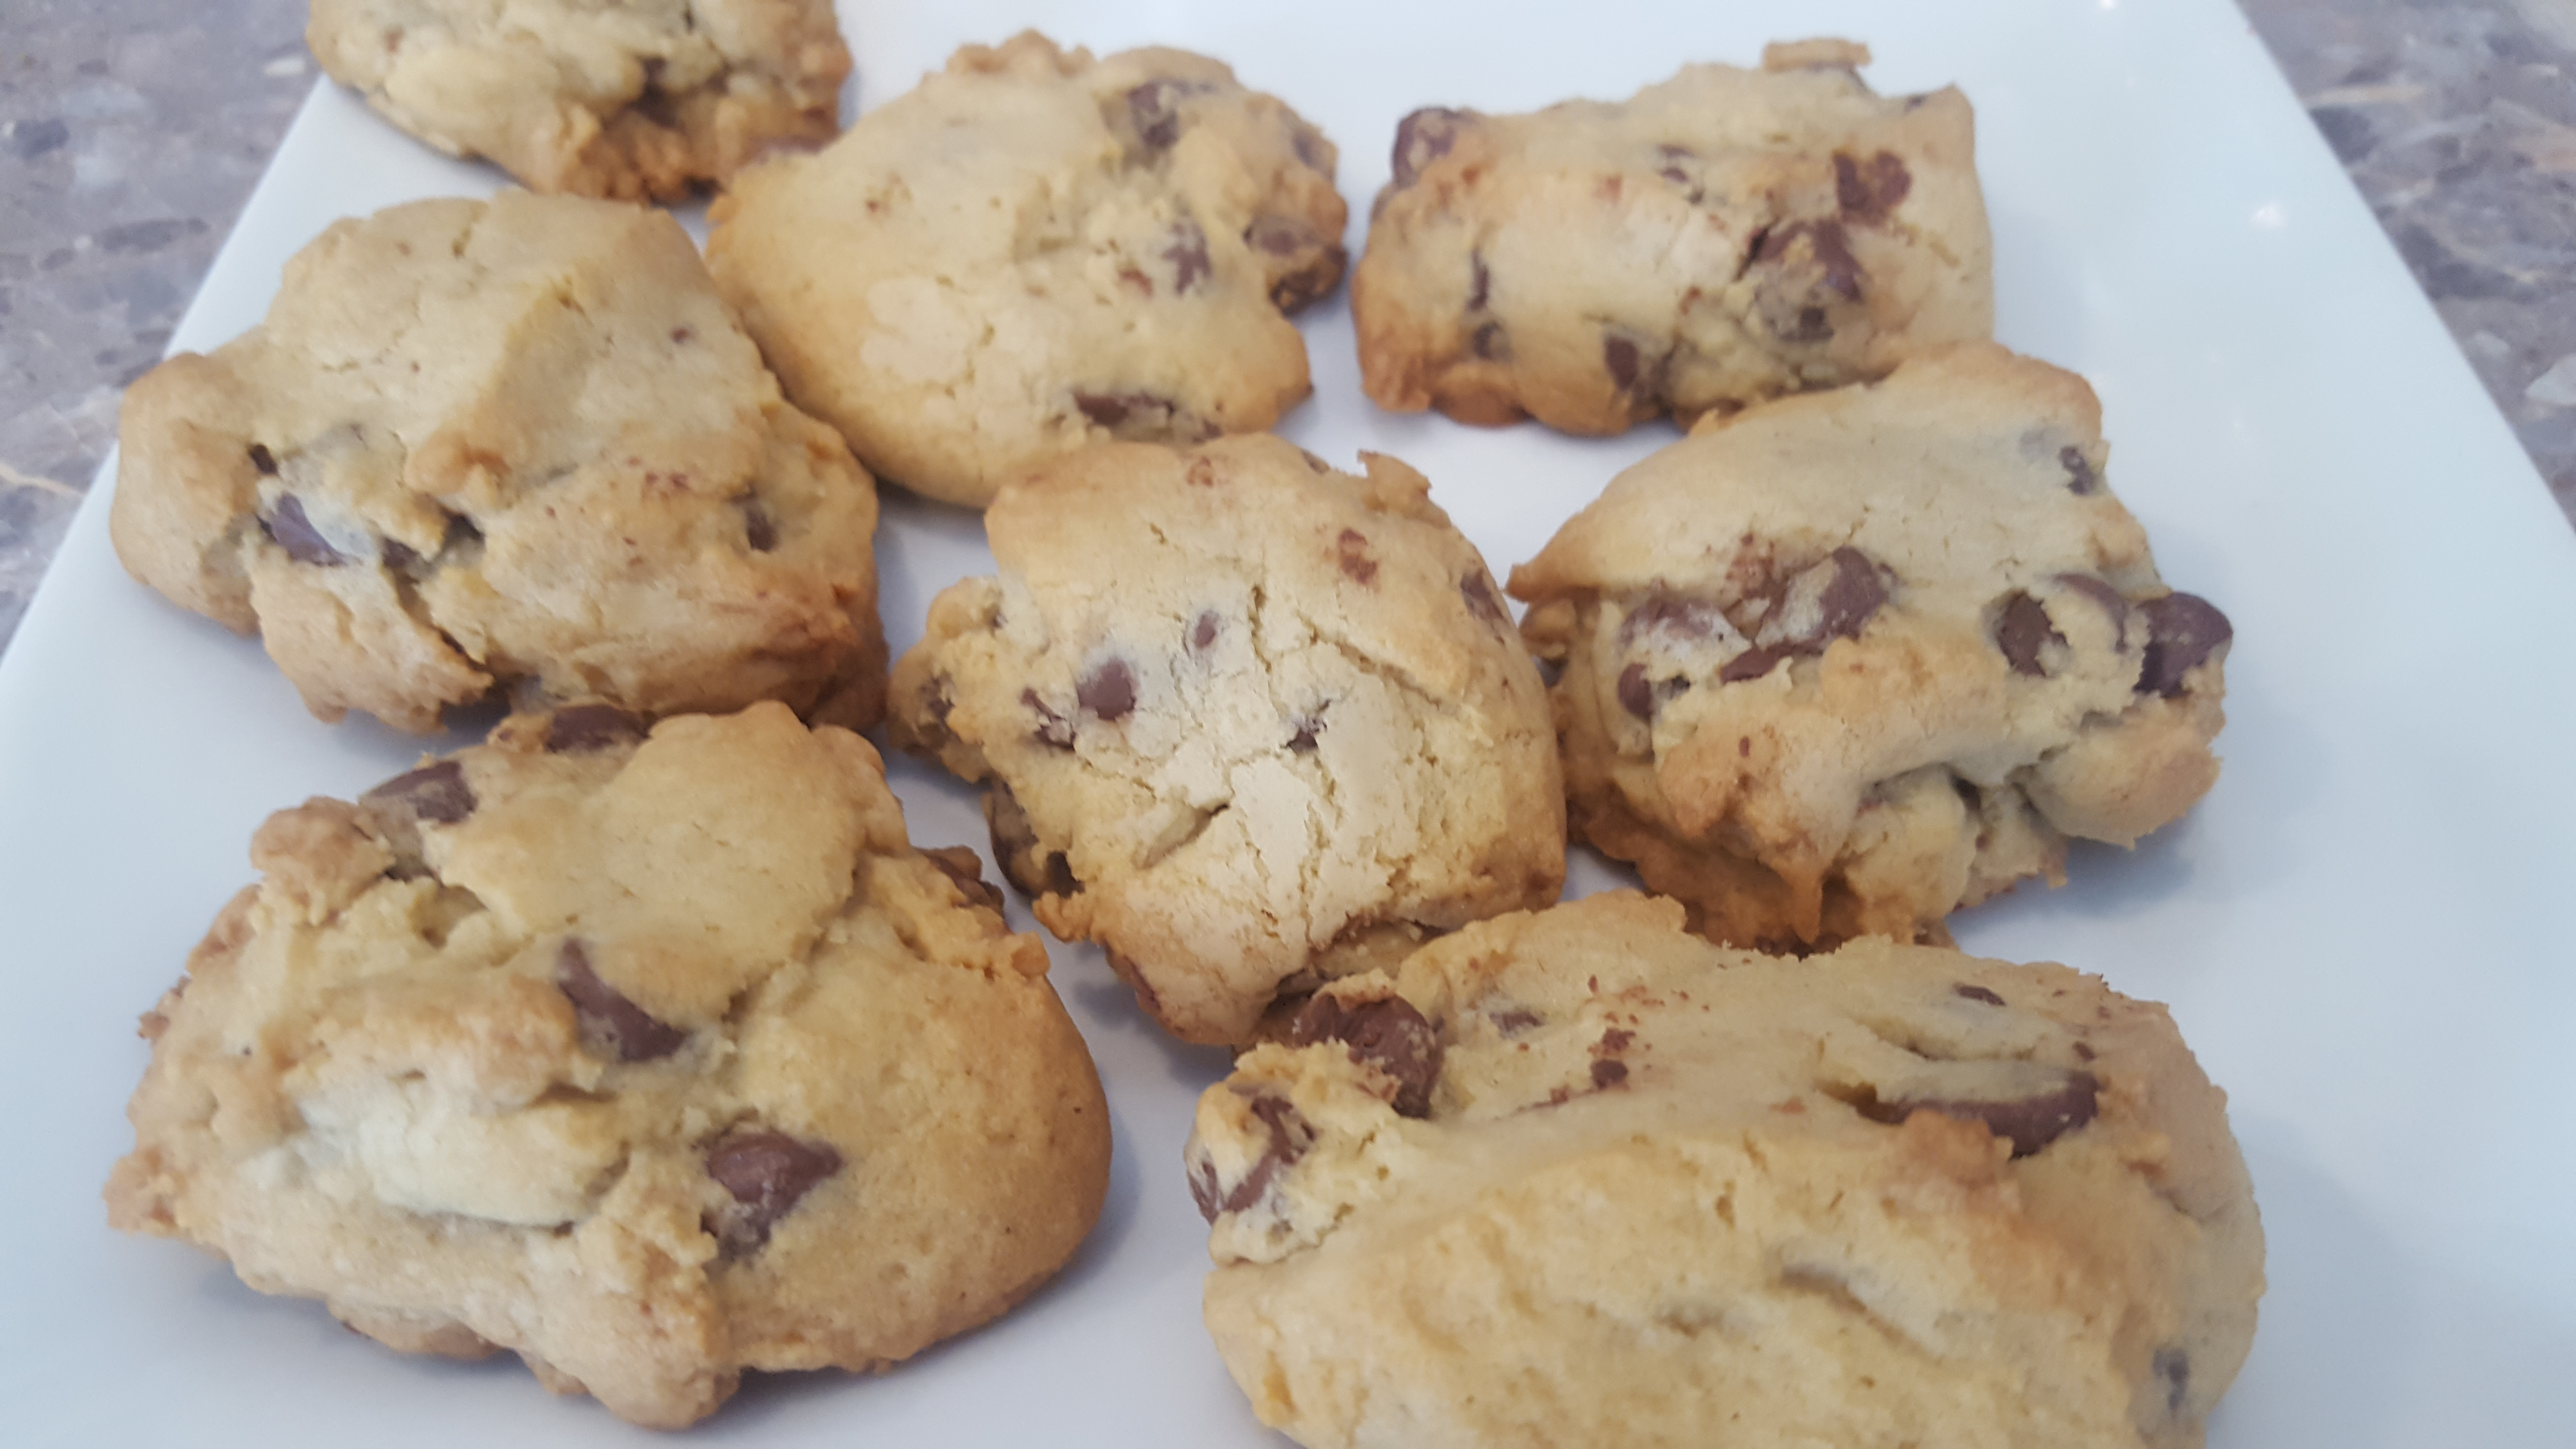 The Trick To Chocolate Chip Cookies Image